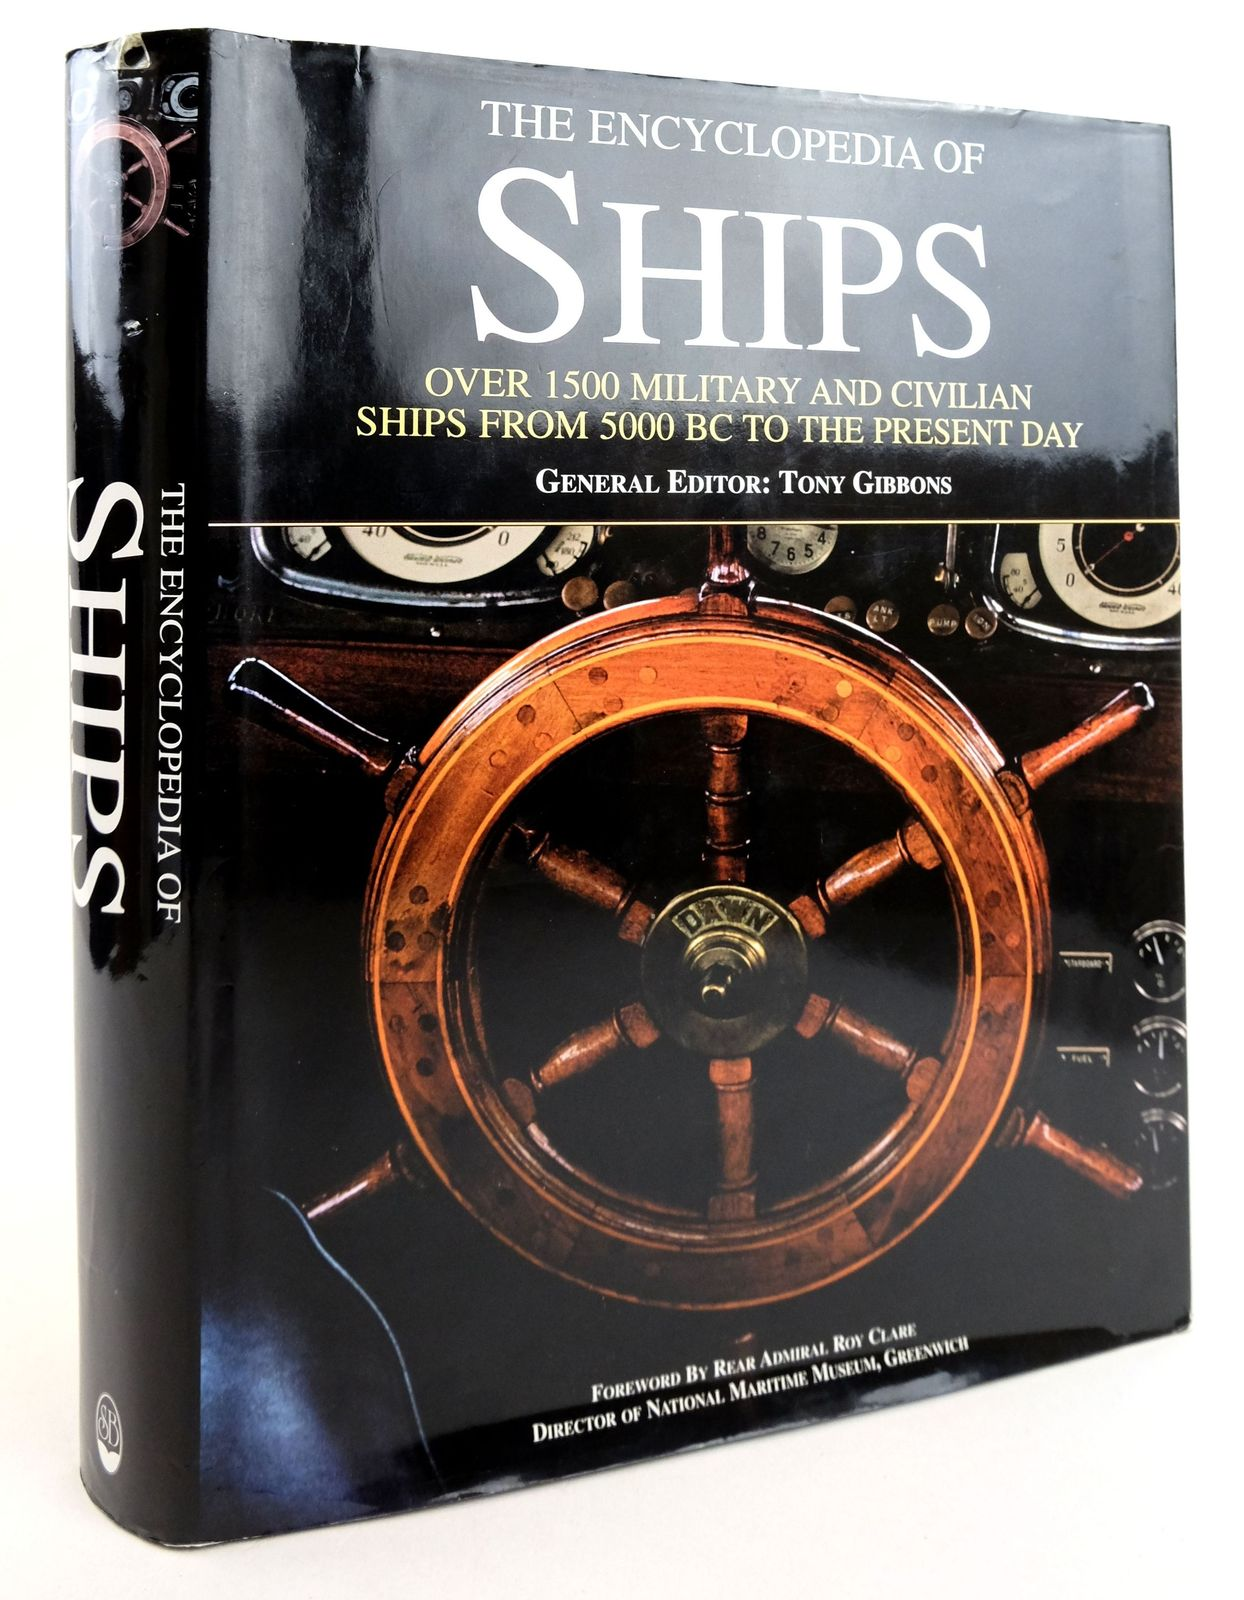 Photo of THE ENCYCLOPEDIA OF SHIPS written by Gibbons, Tony published by Silverdale Books (STOCK CODE: 1819835)  for sale by Stella & Rose's Books